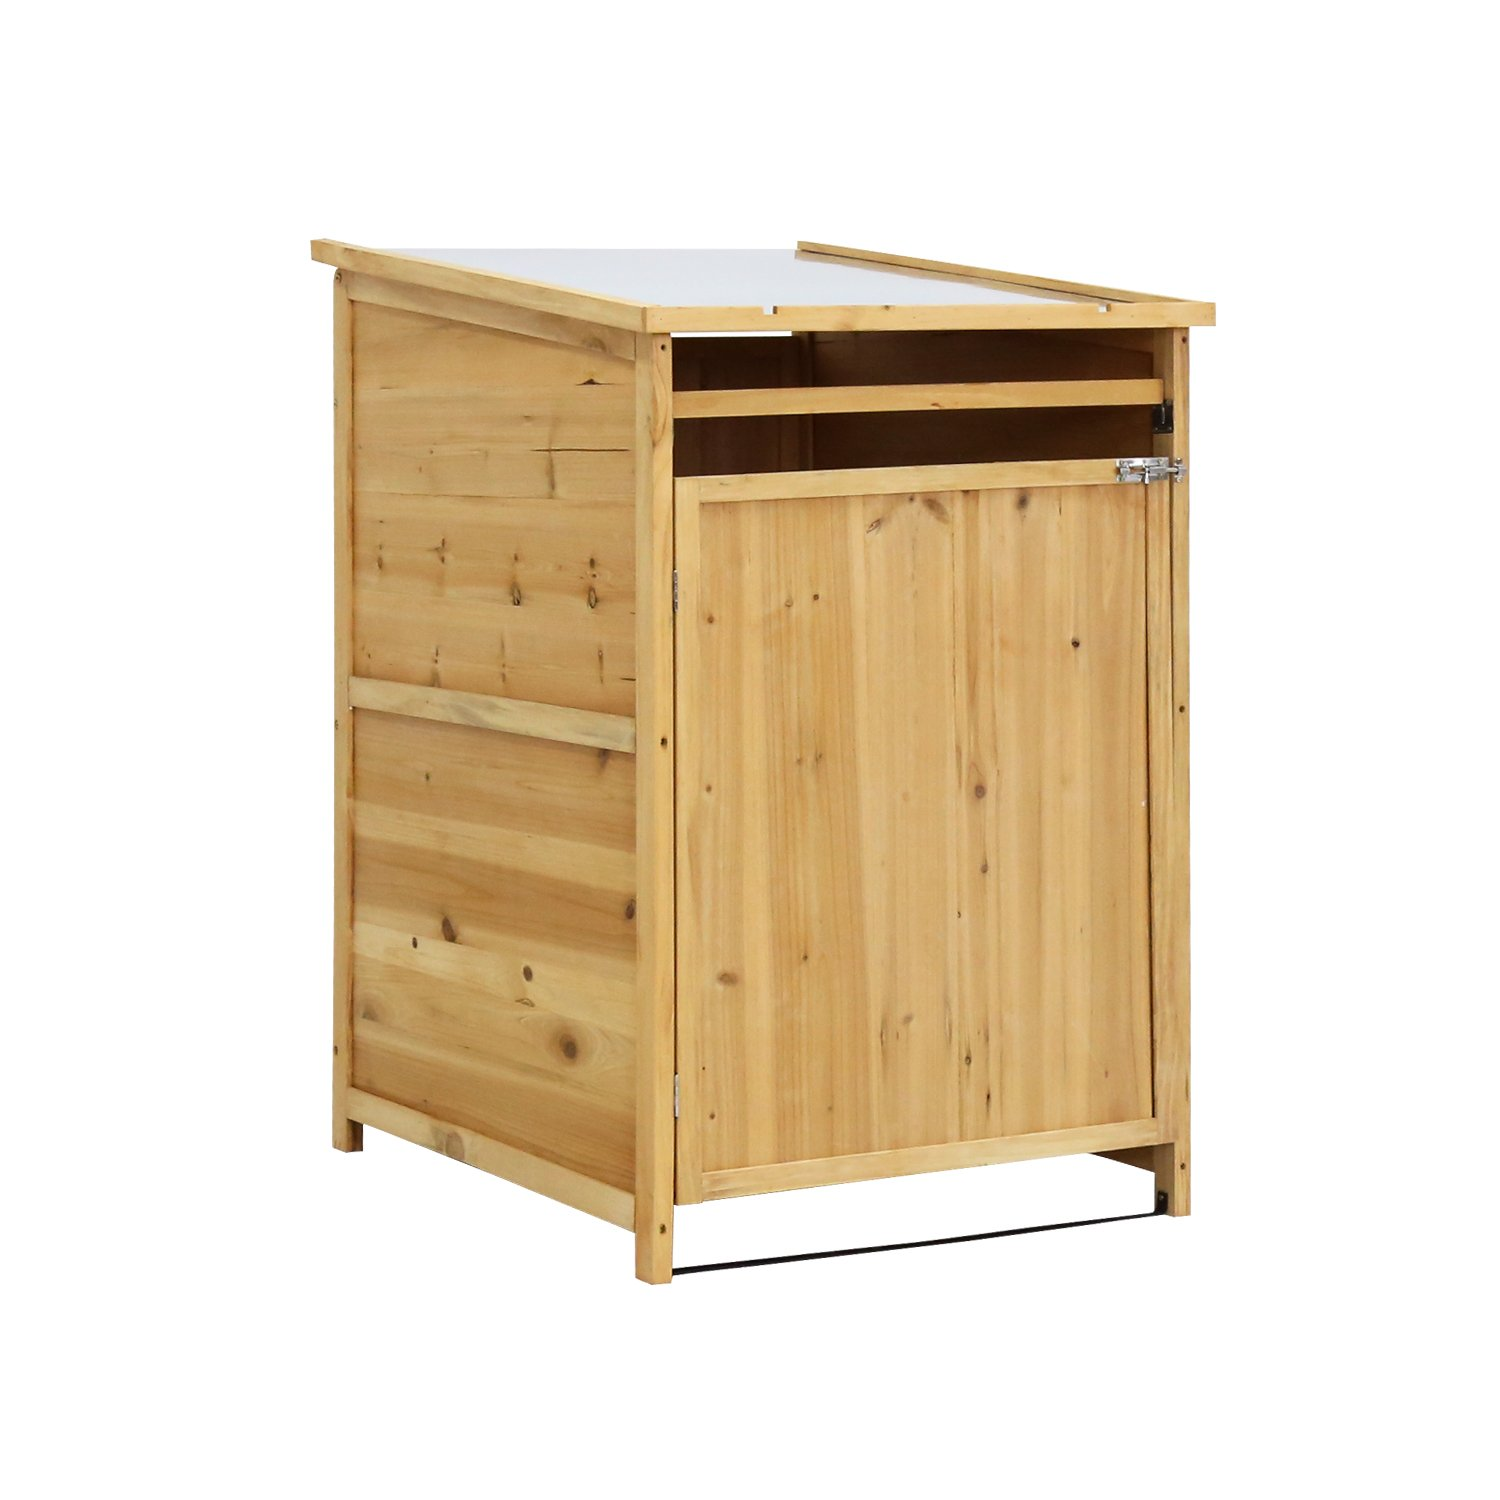 Kinbor Outdoor Wooden Storage Shed Lockers Cabinet for Garden Yard with Single Doors